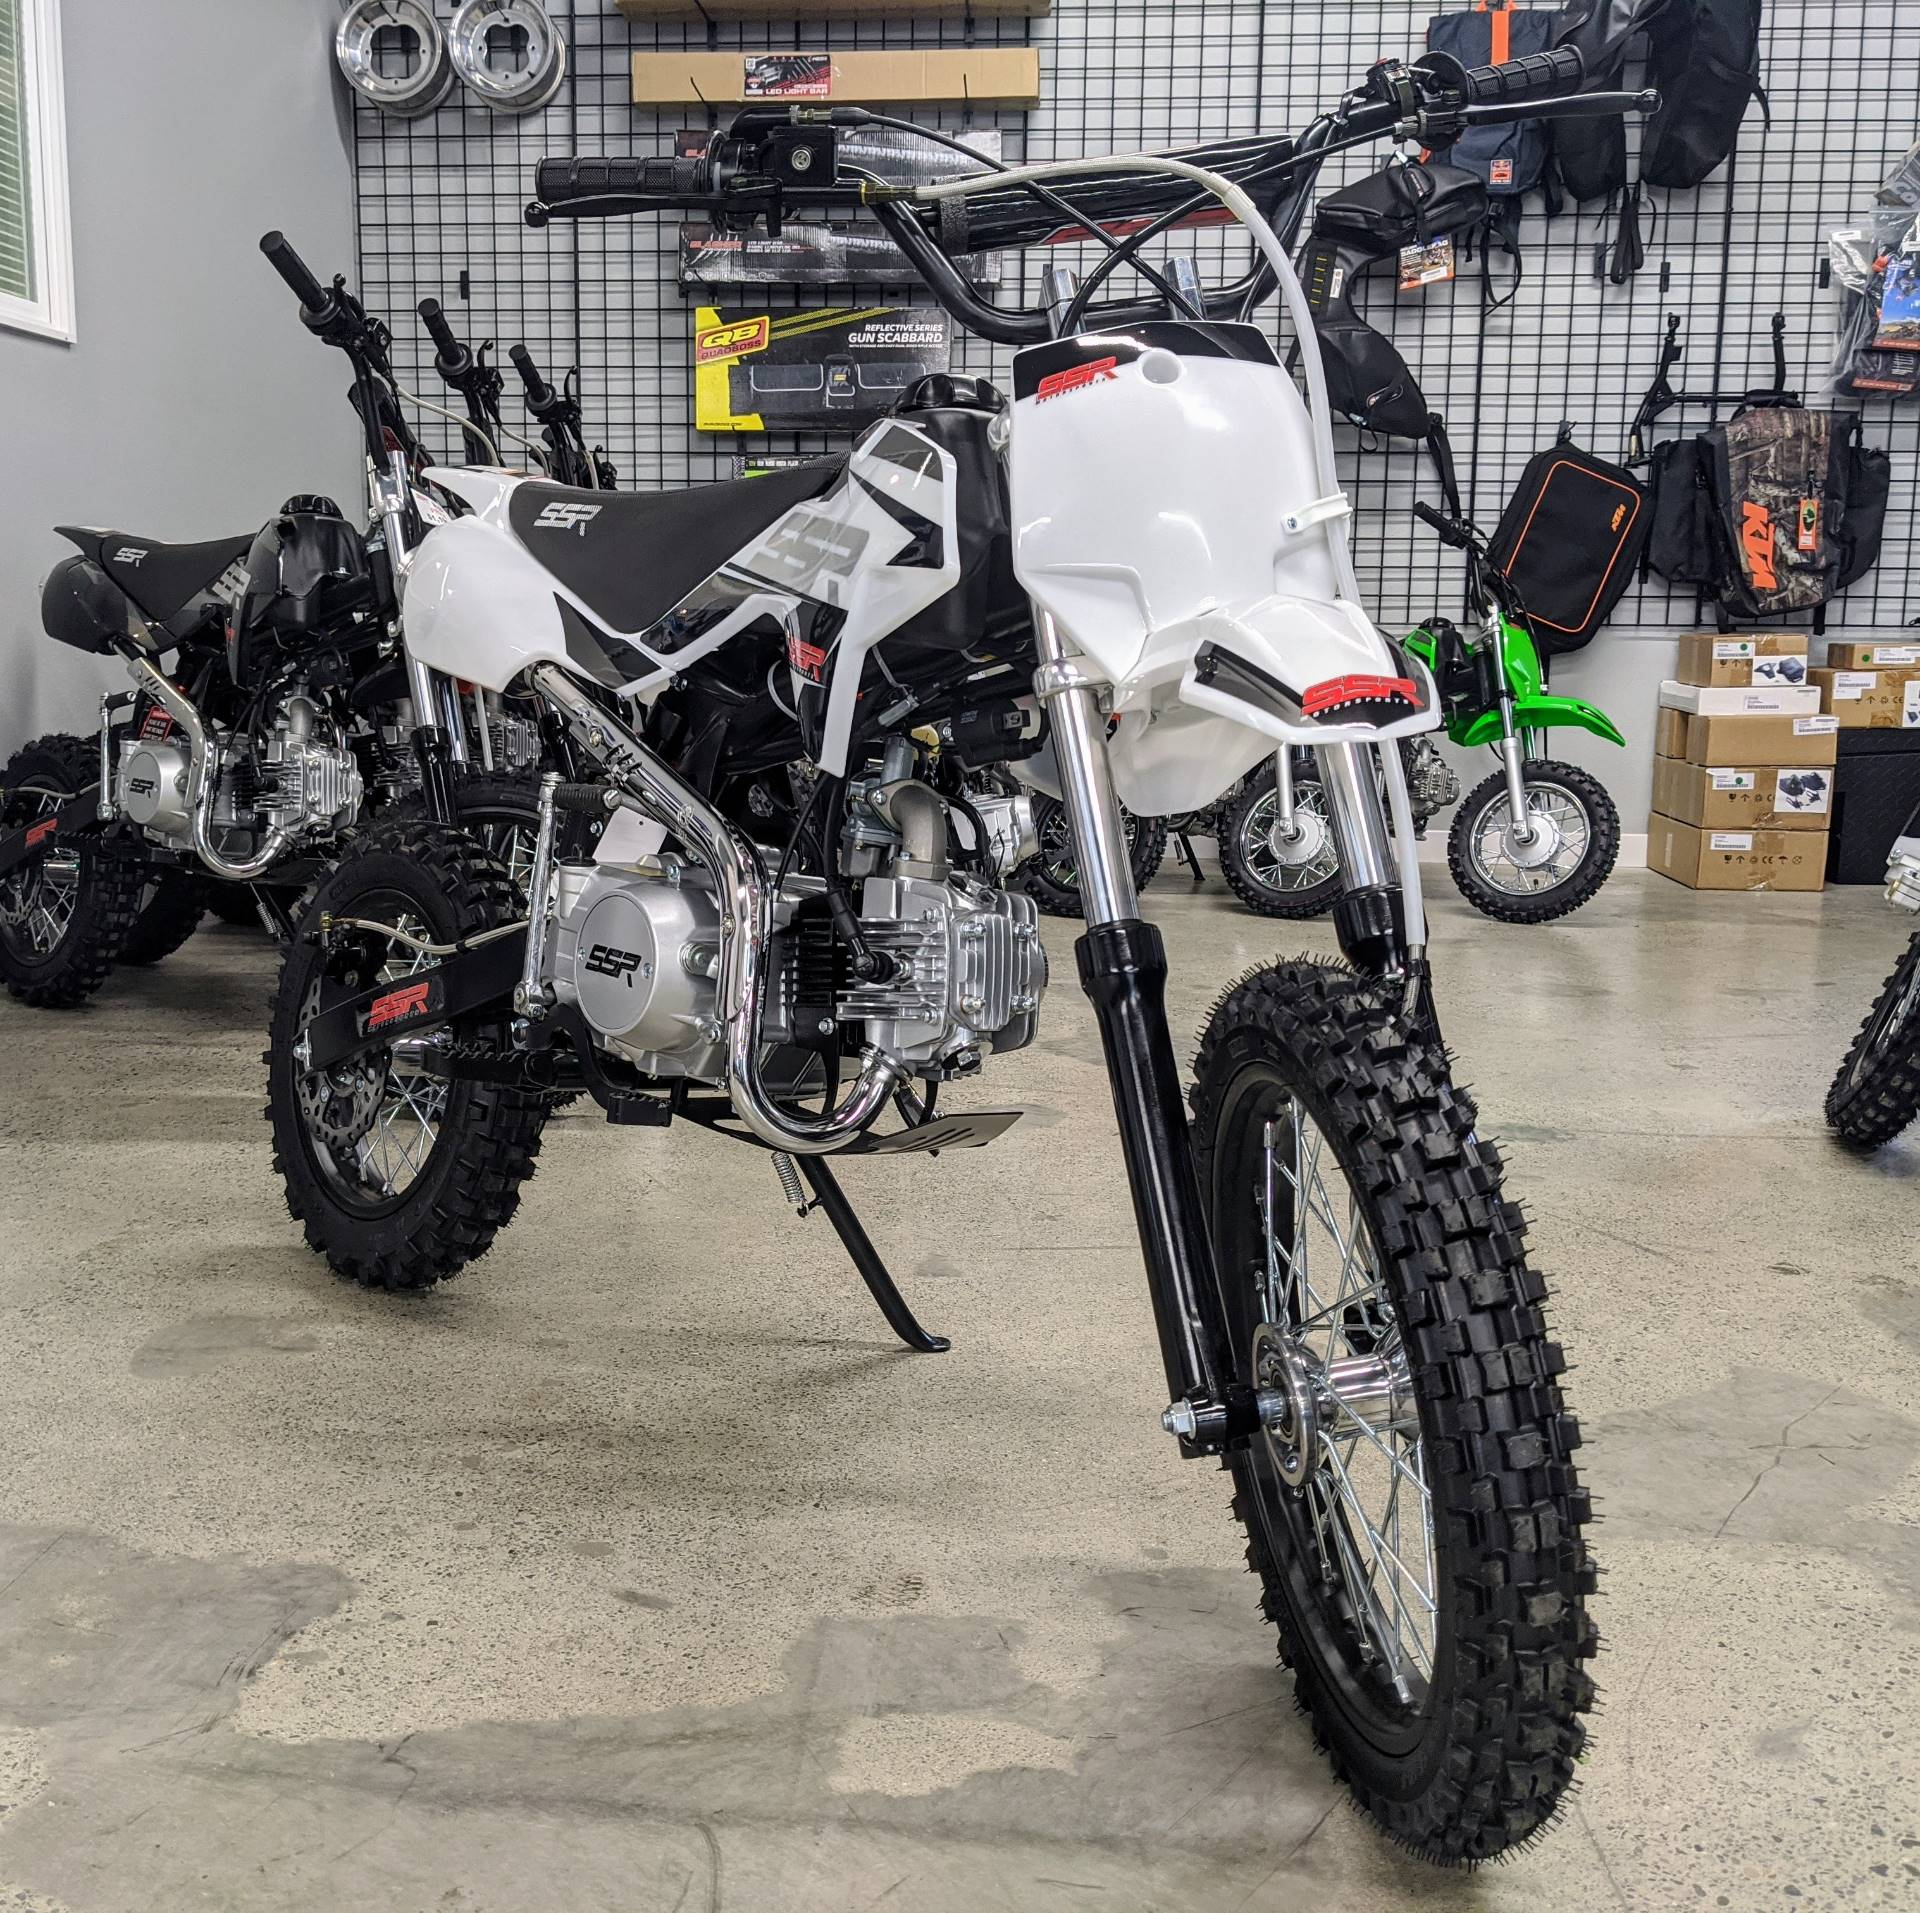 2021 SSR Motorsports SR125 in Gresham, Oregon - Photo 3